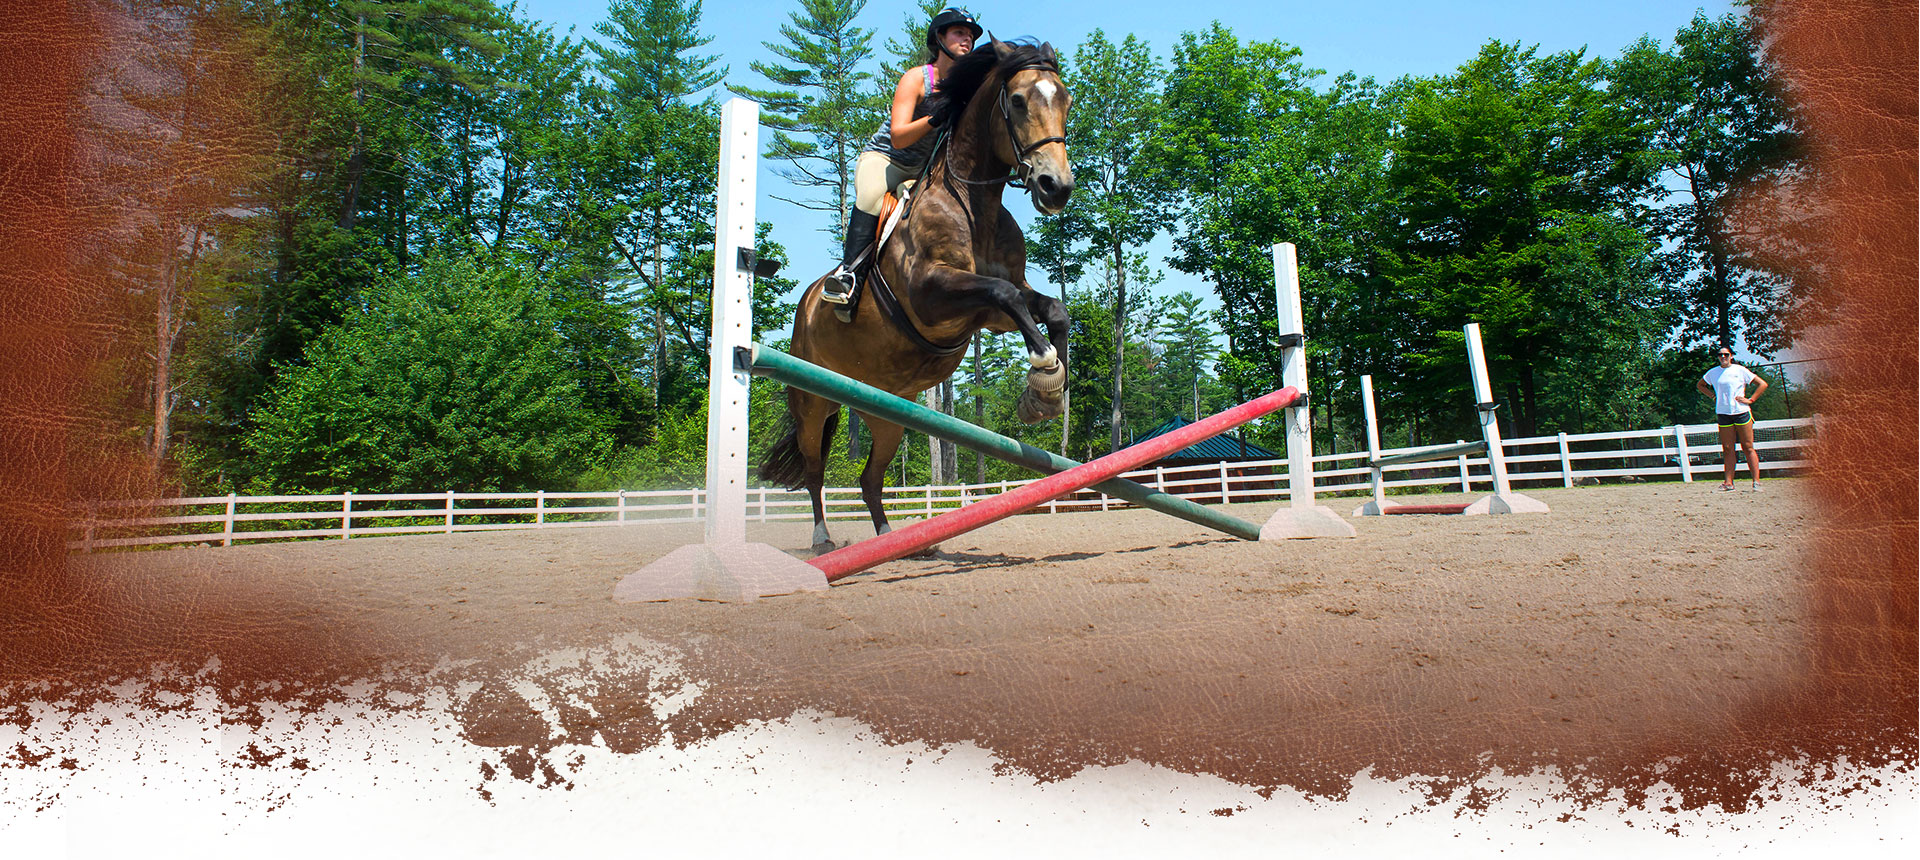 Equestrian horseback riding program at Camp Laurel in Maine